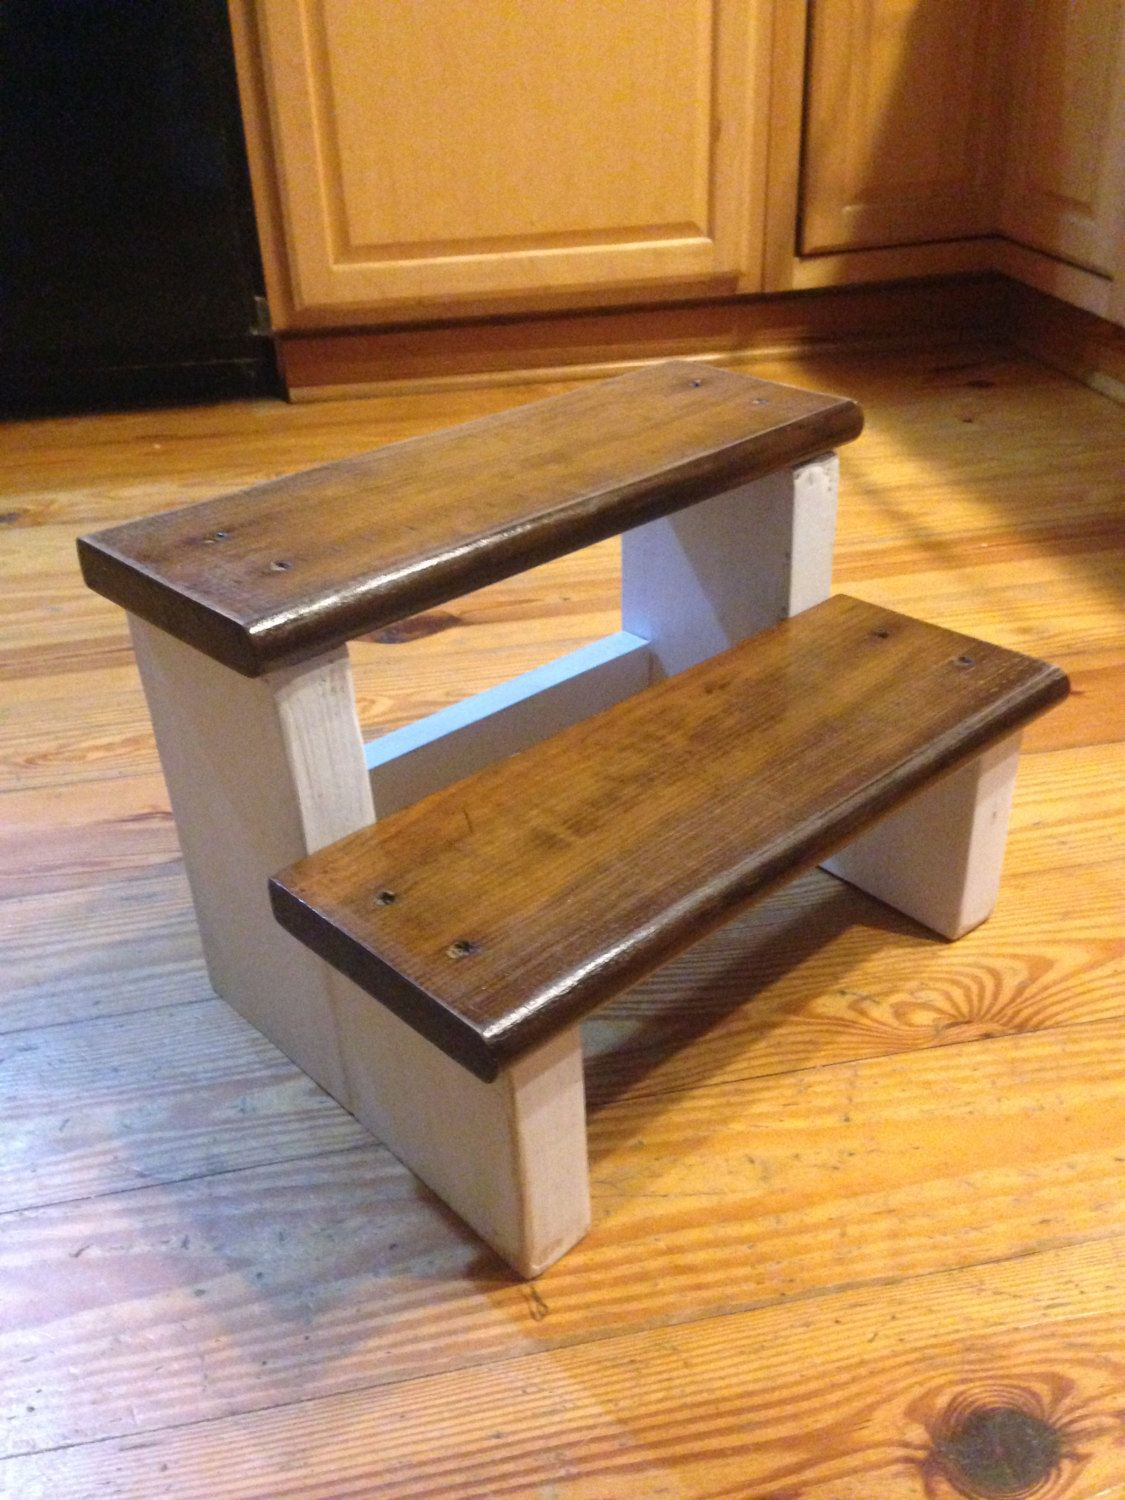 Kitchen Step Stool Simple Cabinets Rustic Wood Farm House Kids Childs